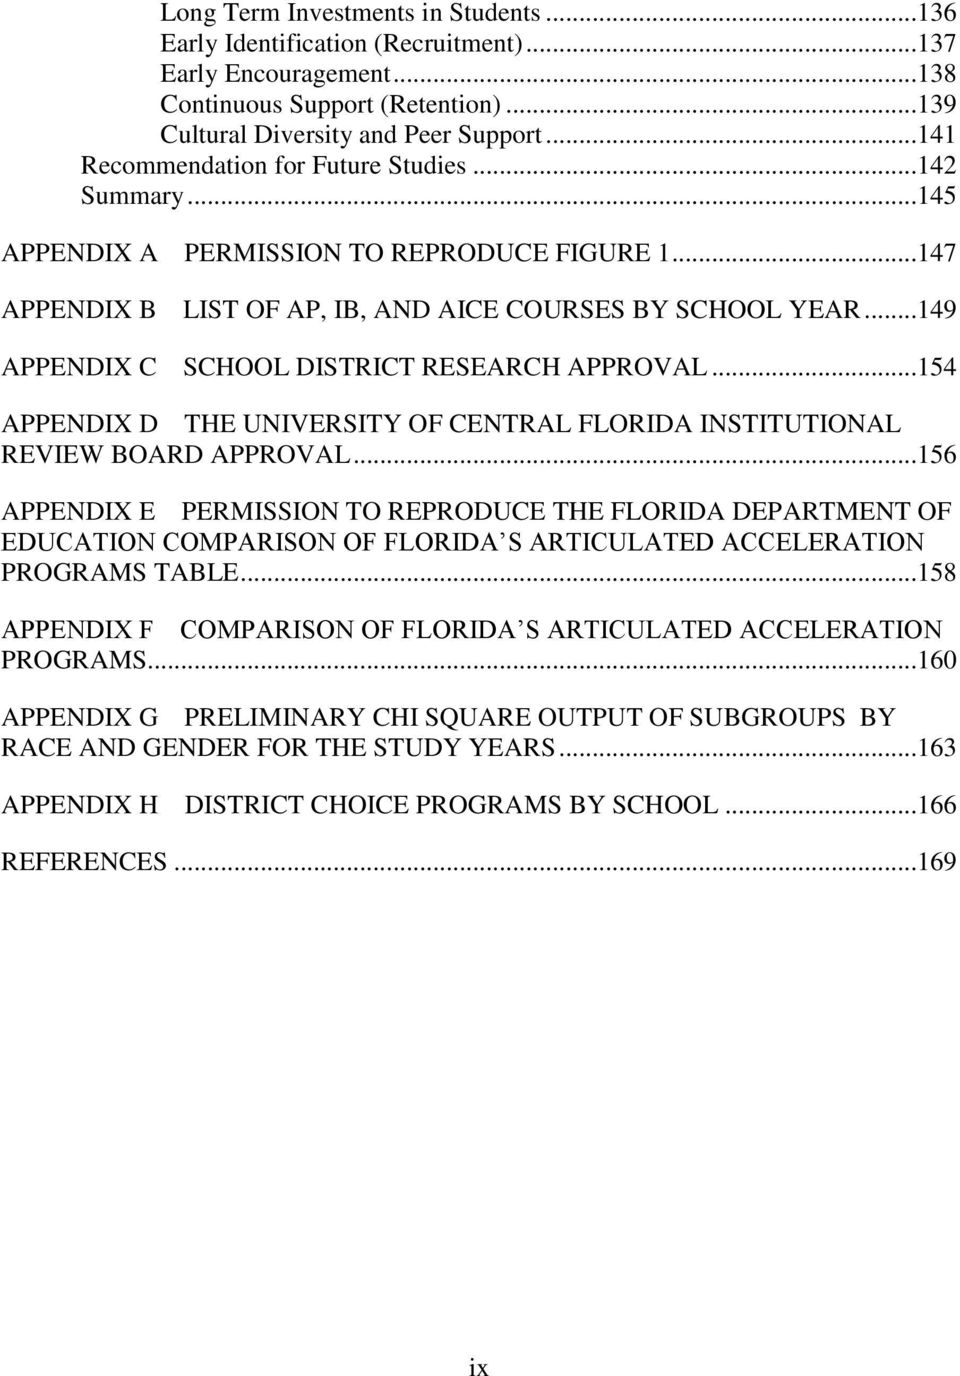 ..149 APPENDIX C SCHOOL DISTRICT RESEARCH APPROVAL...154 APPENDIX D THE UNIVERSITY OF CENTRAL FLORIDA INSTITUTIONAL REVIEW BOARD APPROVAL.